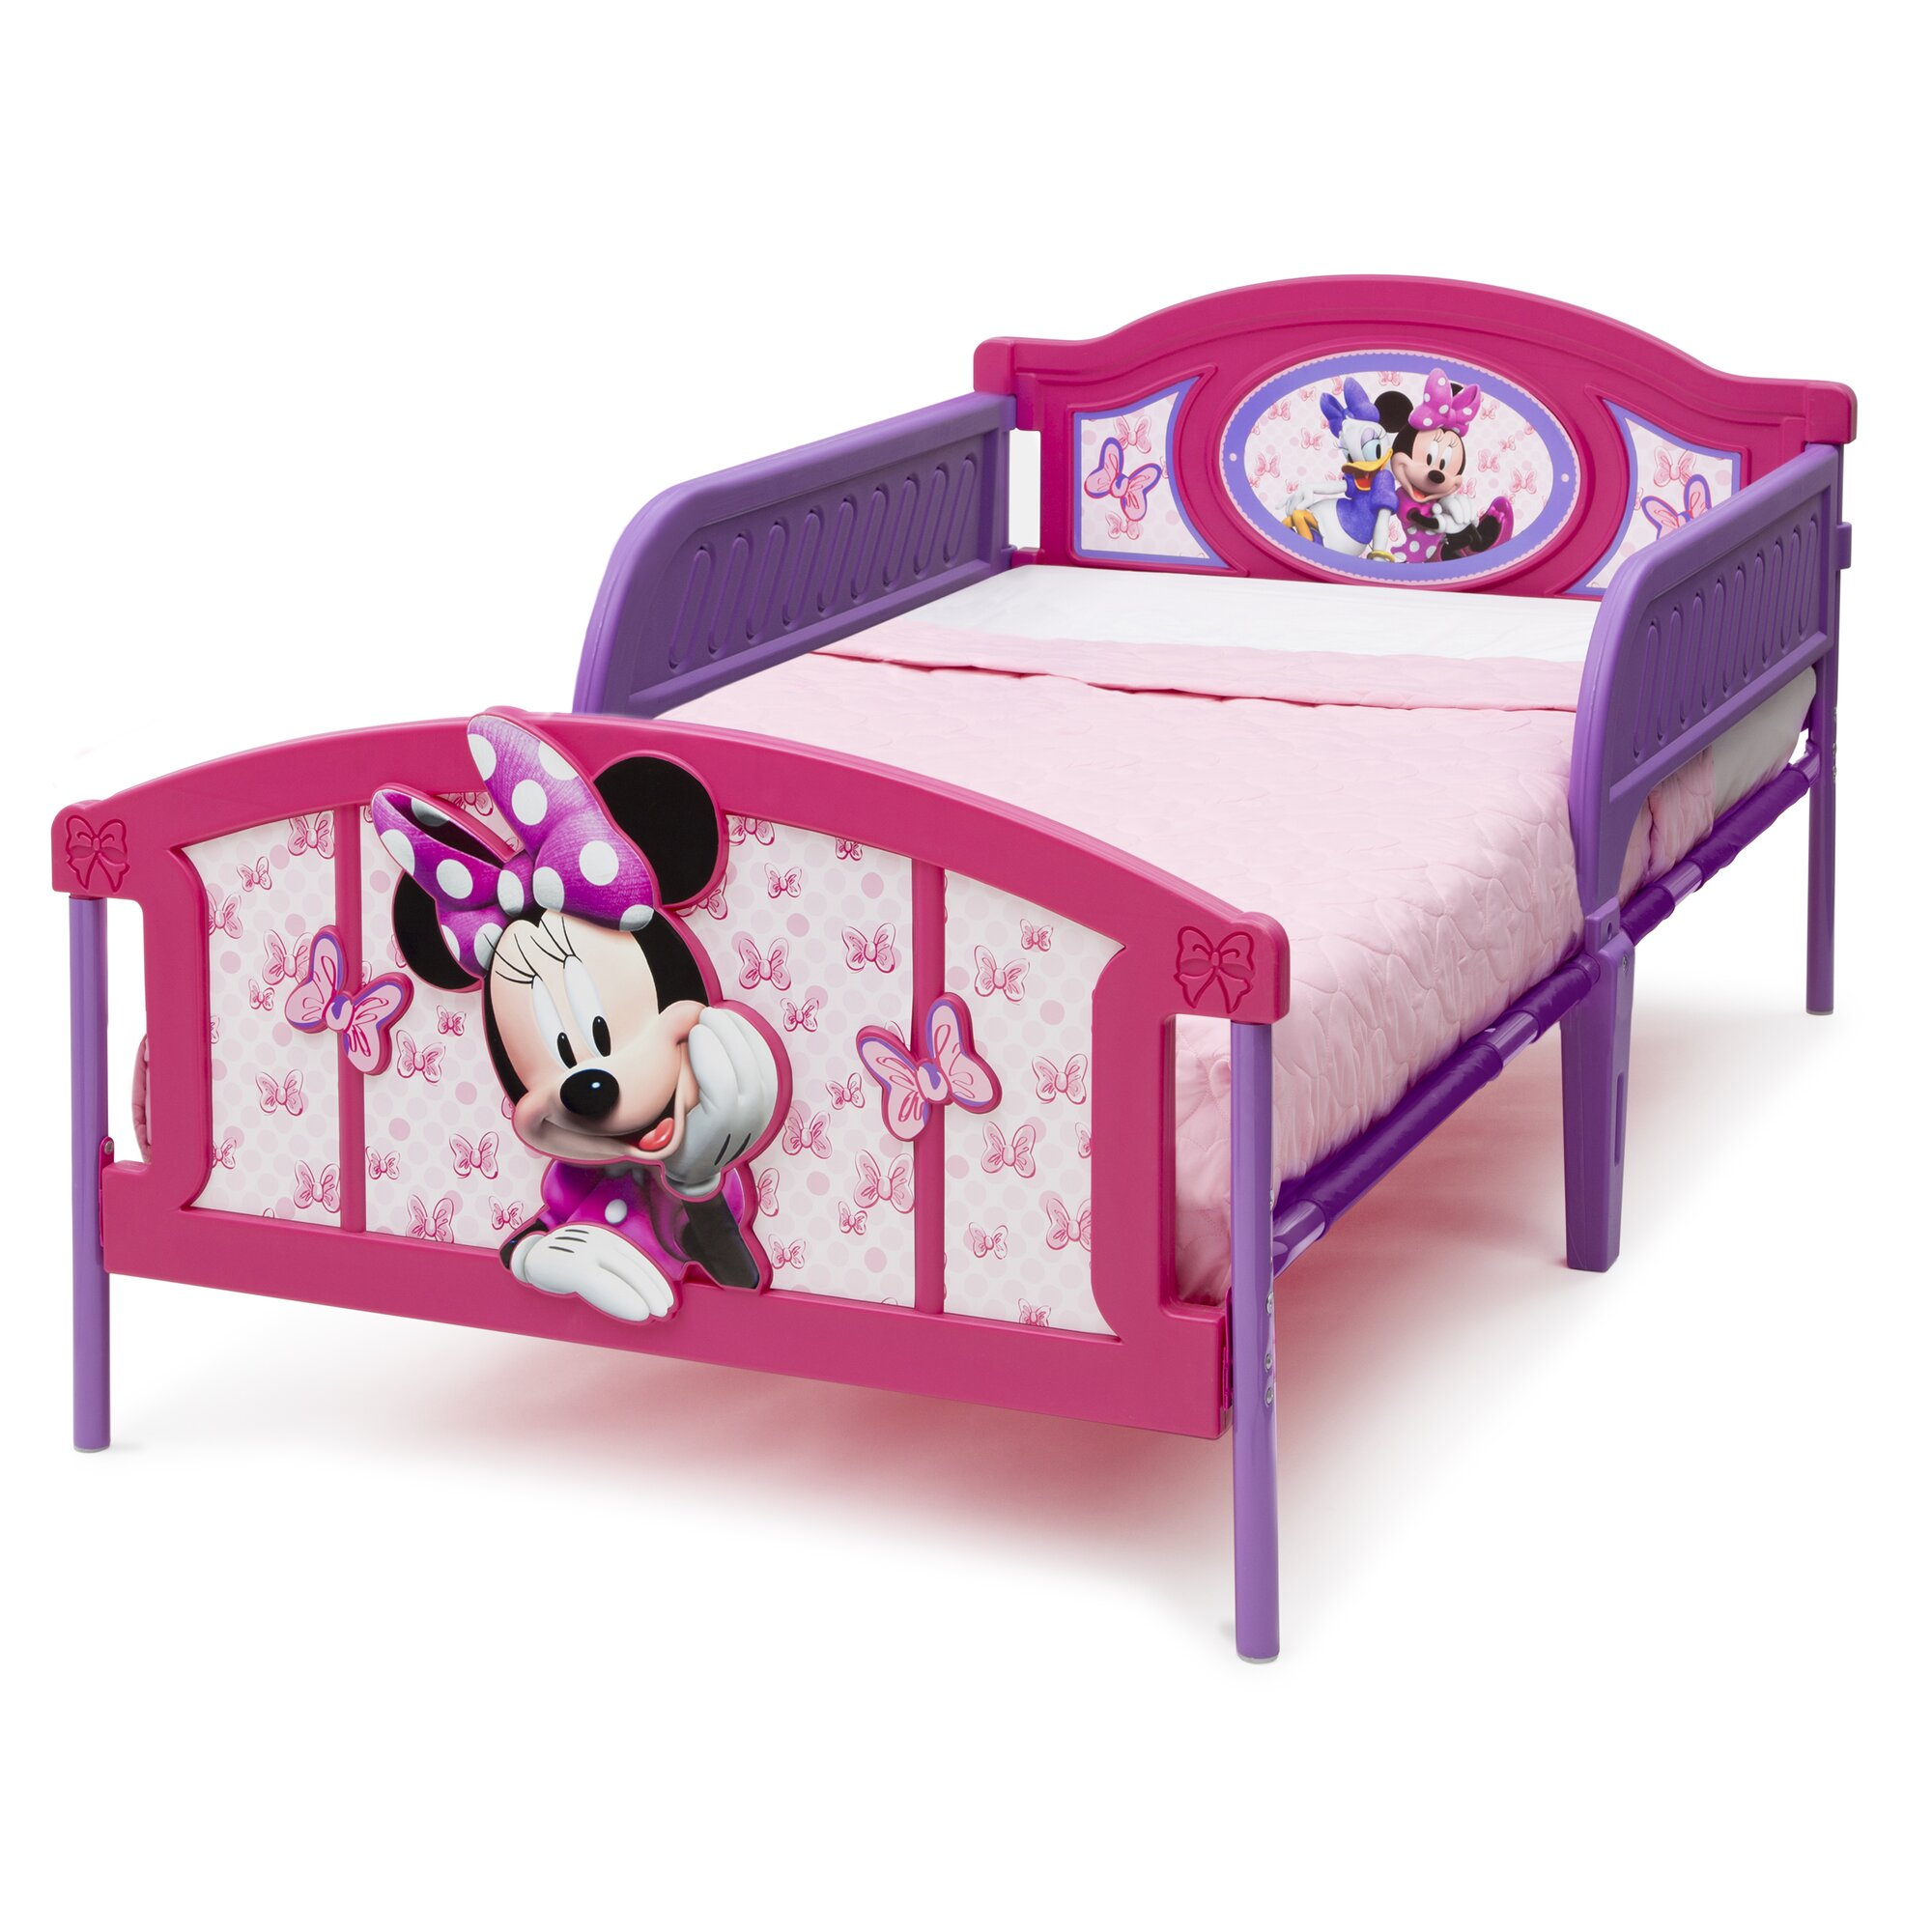 deltachildren bett minnie maus mitgel ndern 100 cm x 190 cm. Black Bedroom Furniture Sets. Home Design Ideas